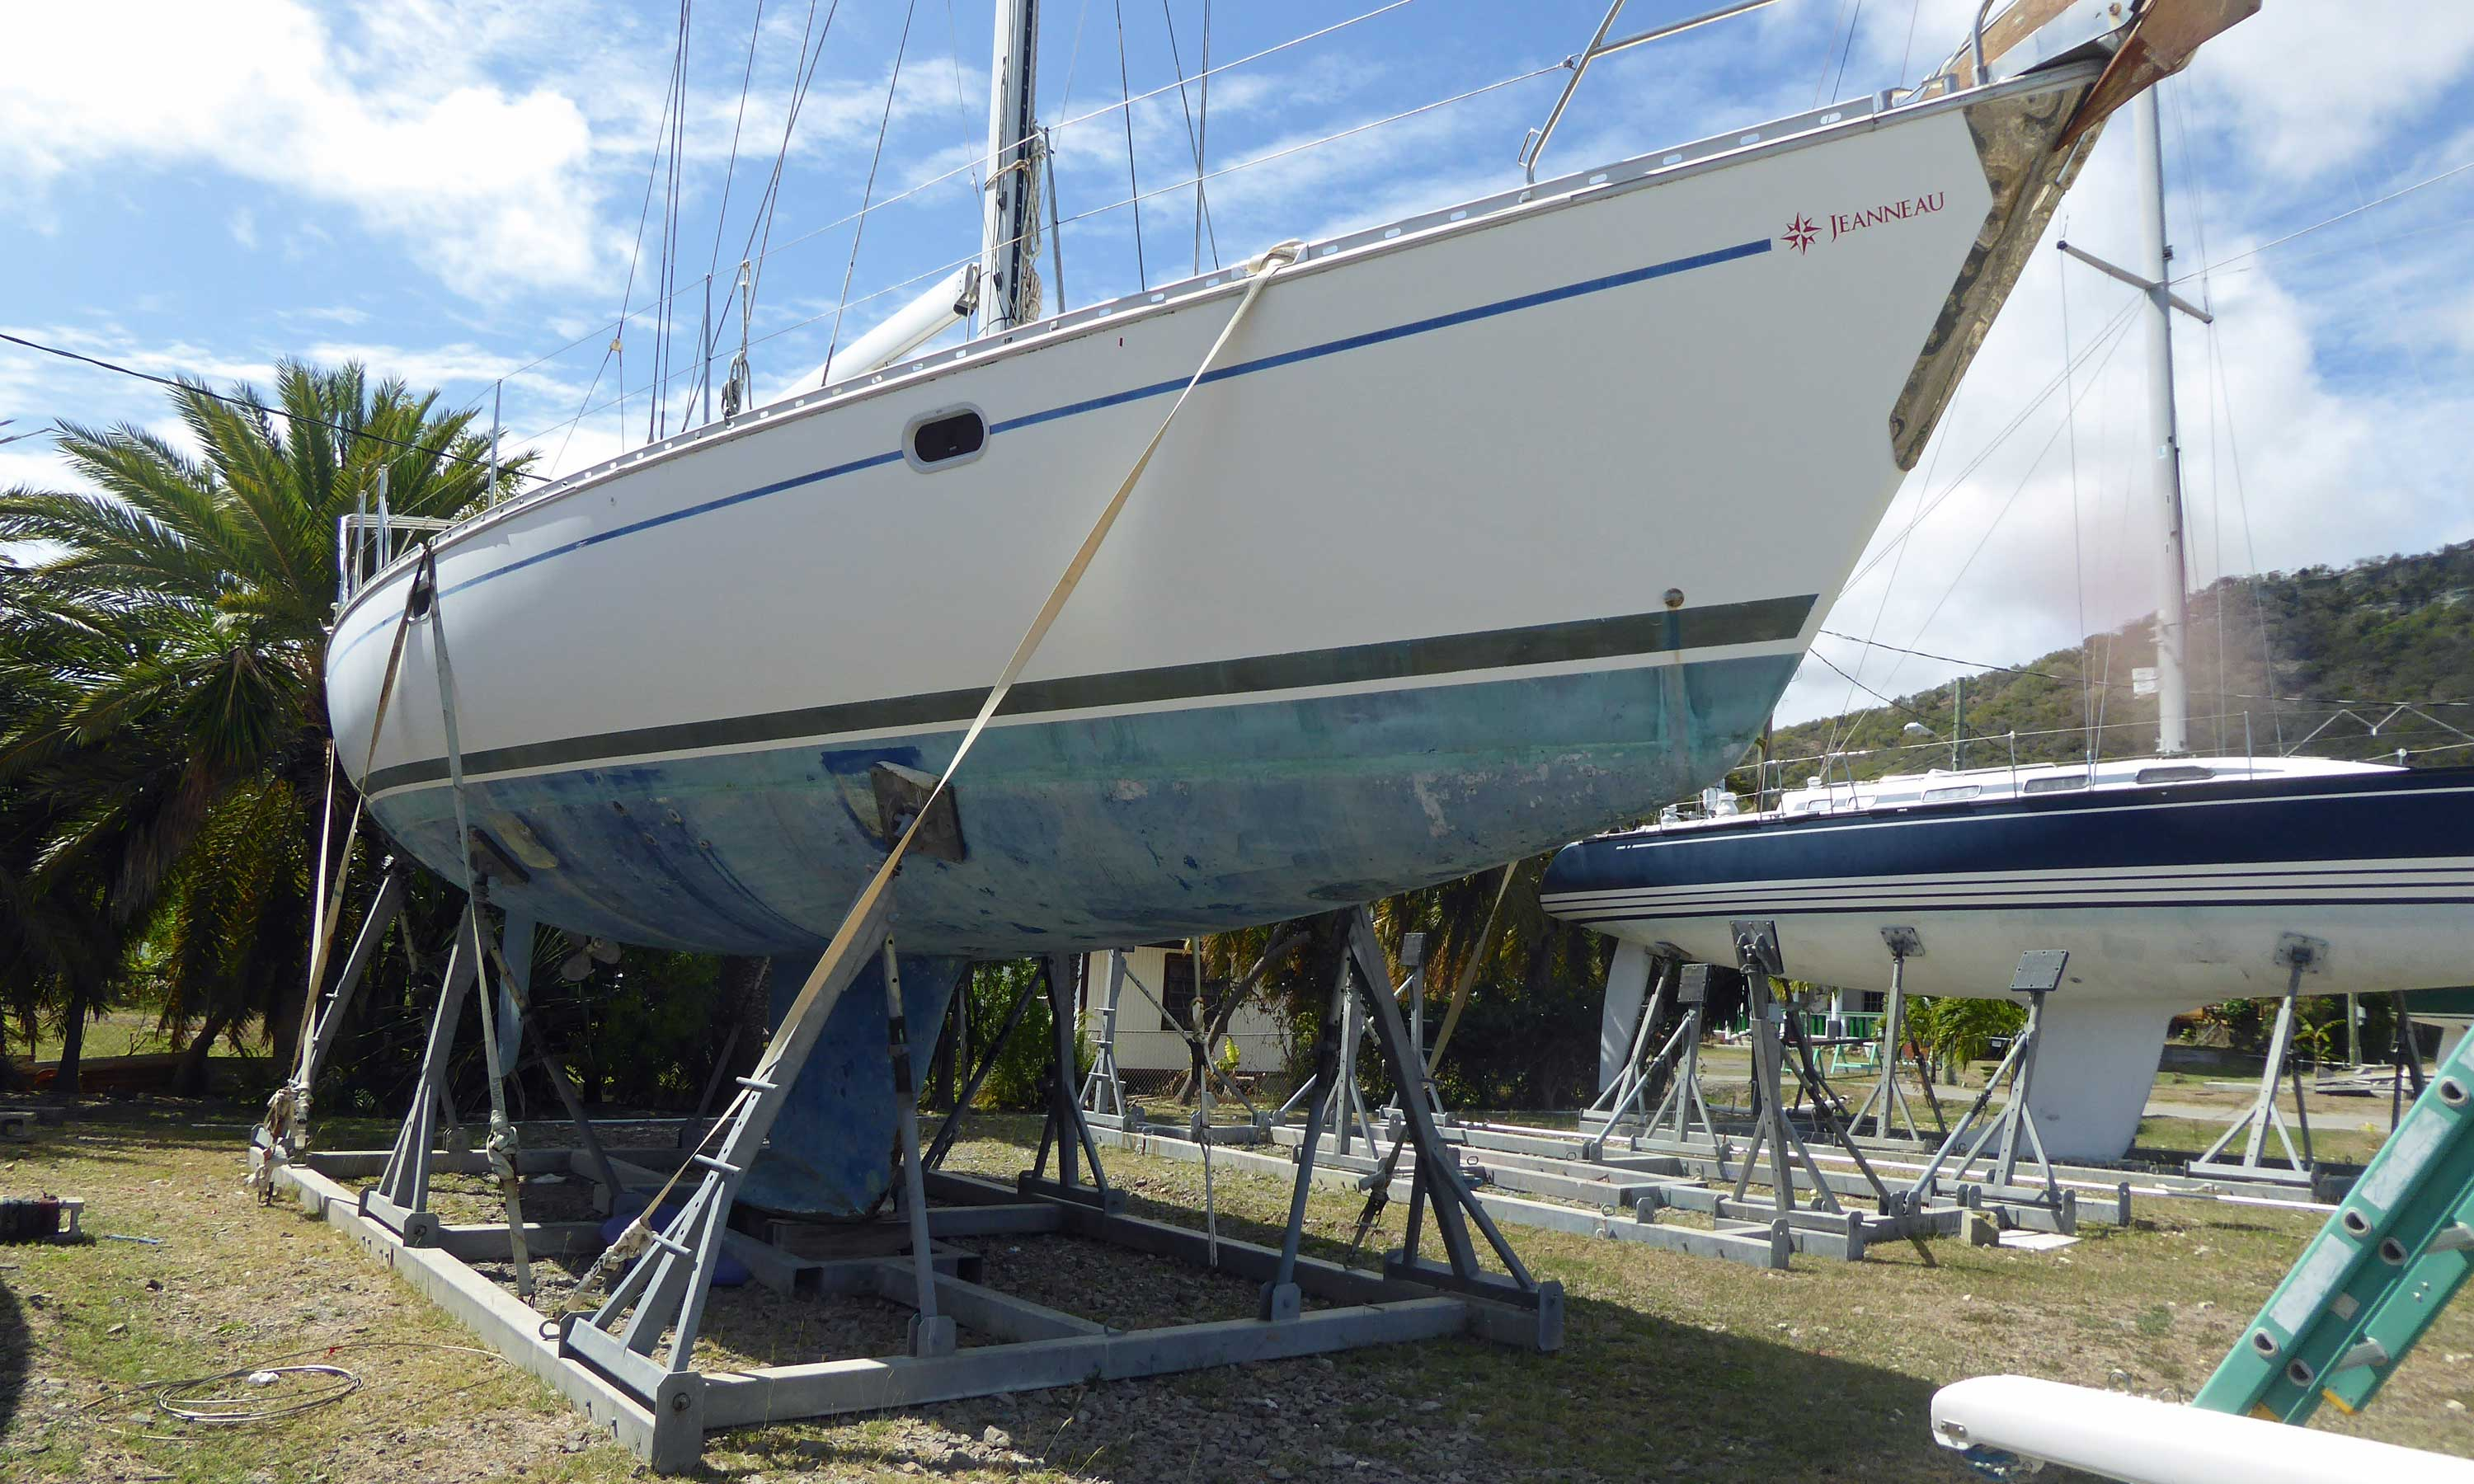 A boat stored in a cradle with tie downs for the Caribbean hurricane season